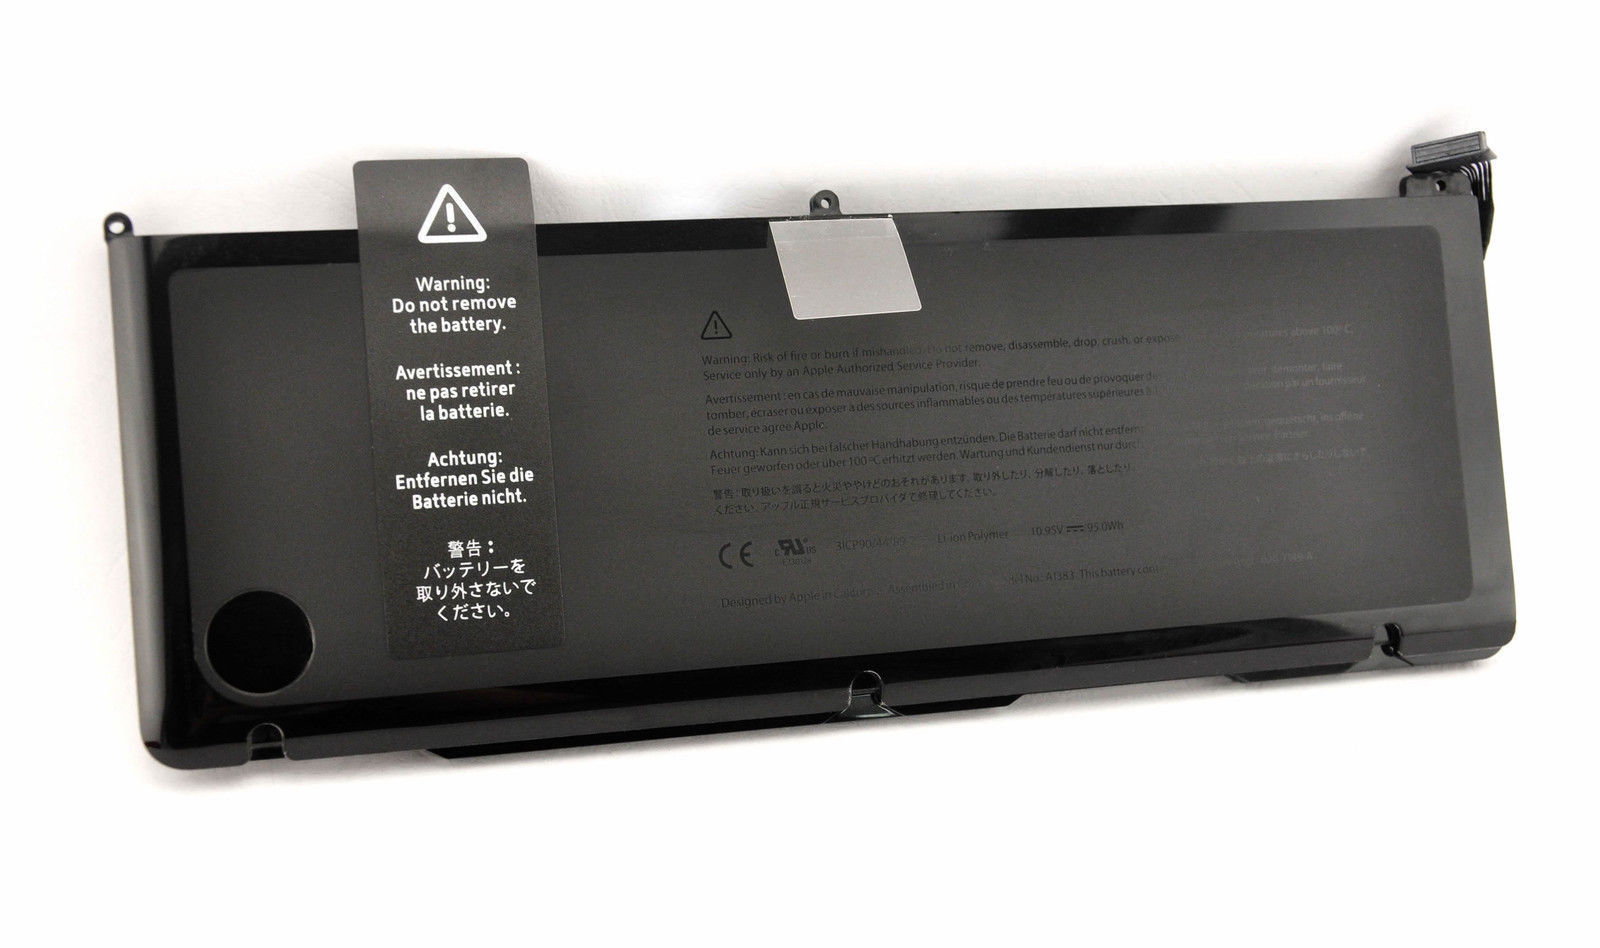 THAY PIN MacBook Pro 17INCH Battery A1383 (2011) A1297 MC725 MD311